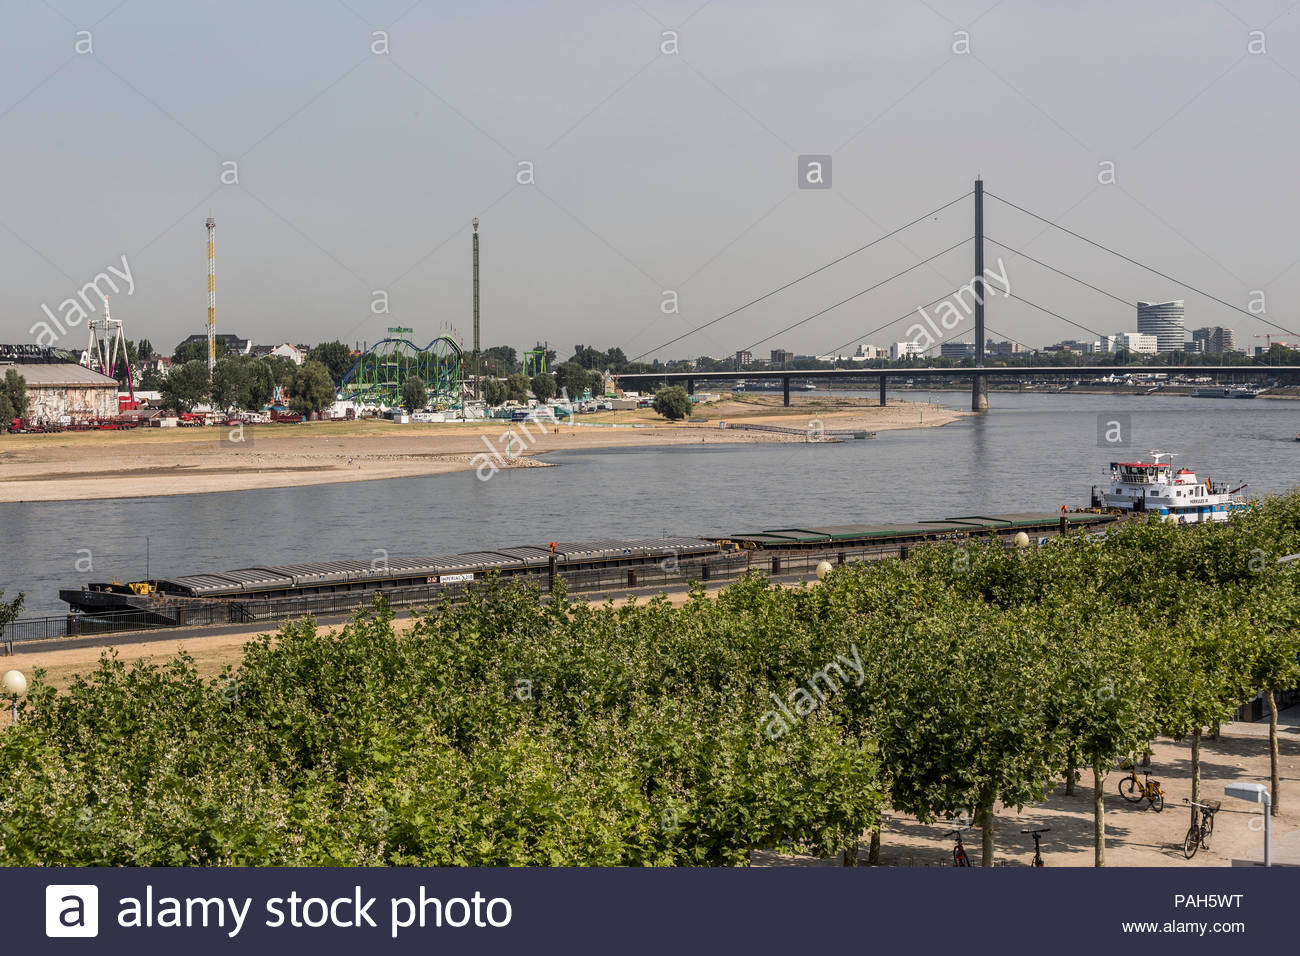 Due to persistent high temperatures and lack of precipitation, the water level of the river Rhine in Duesseldorf, Germany is lower than usual in the s Stock Photo